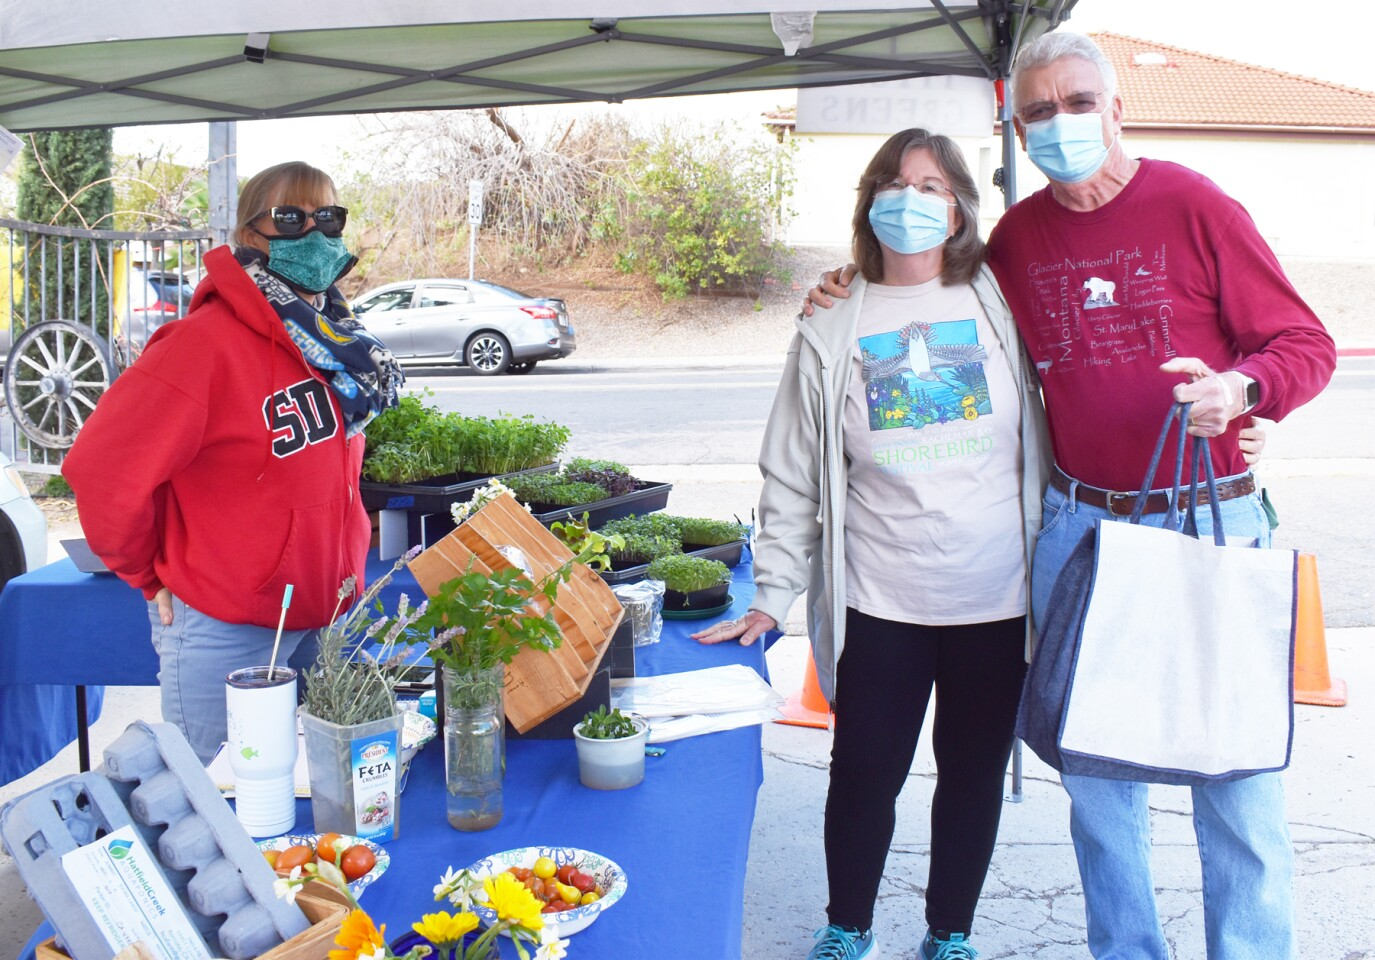 Shannon Glaudini of Hatfield Creek Aquaponics and Farm with customers Debbie and Larry Fontaine.